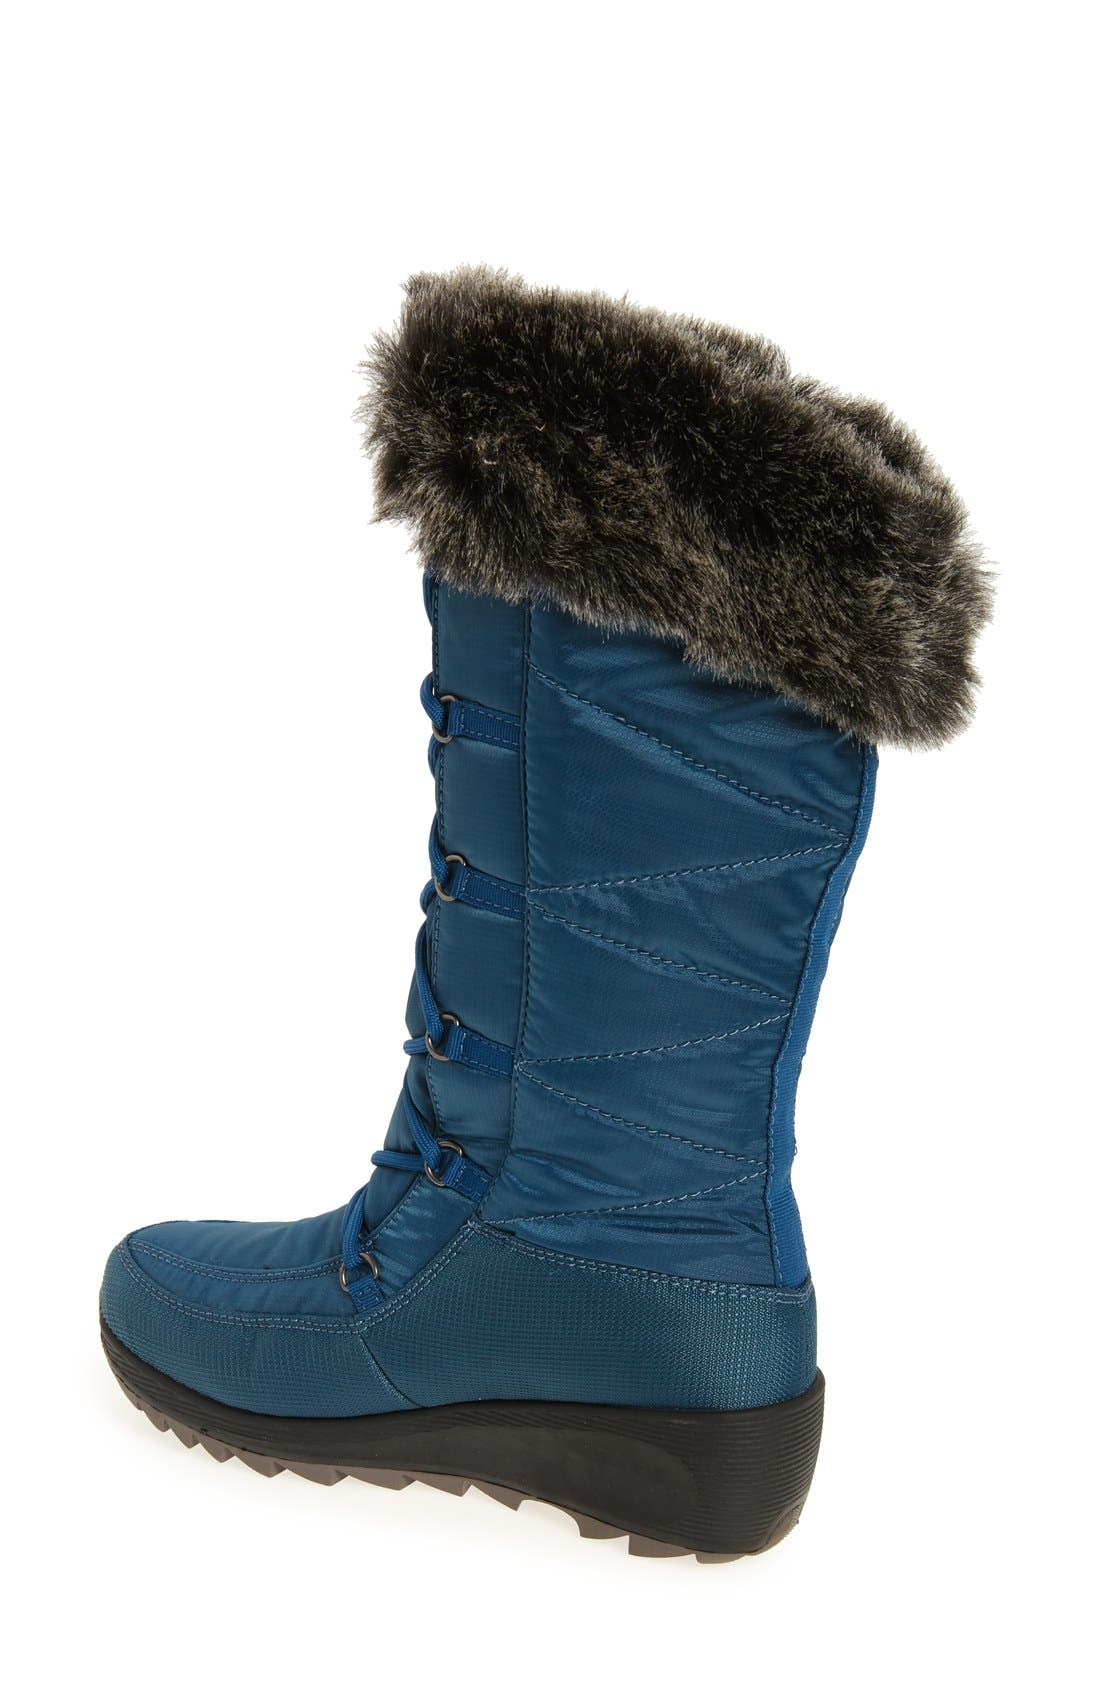 Pinot Waterproof Boot with Faux Fur Cuff,                             Alternate thumbnail 4, color,